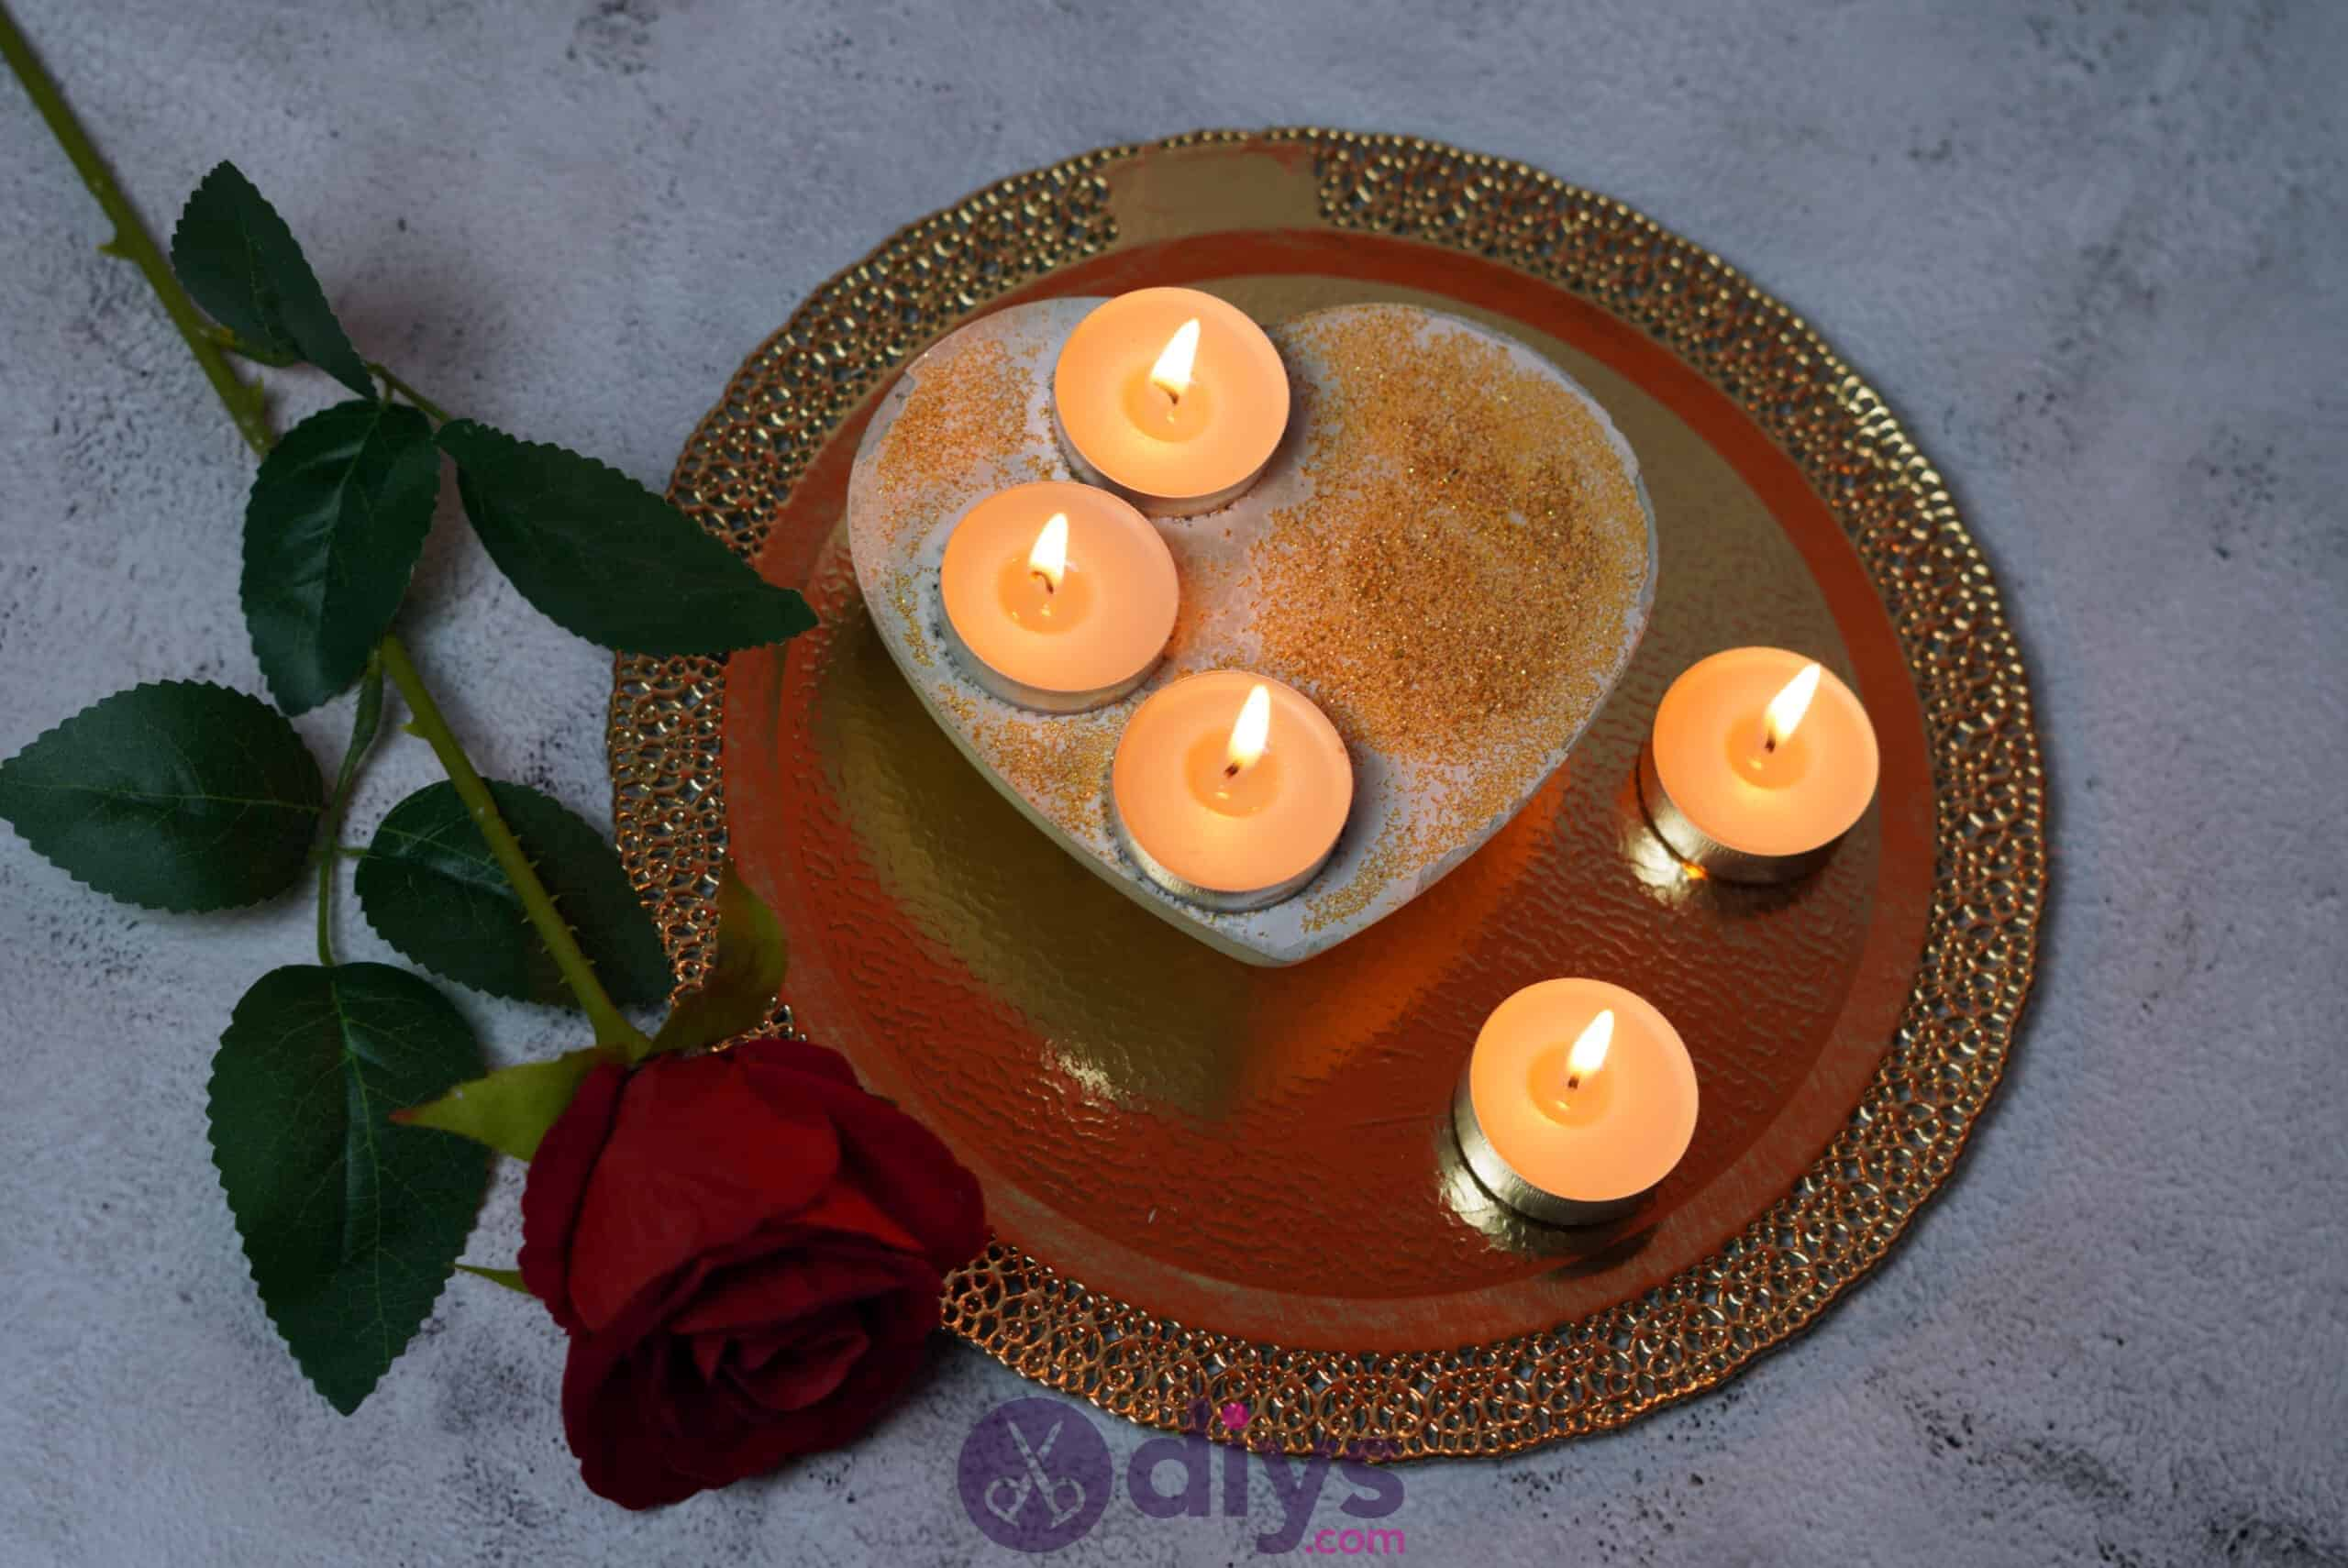 Diy concrete heart candle holder step 7c